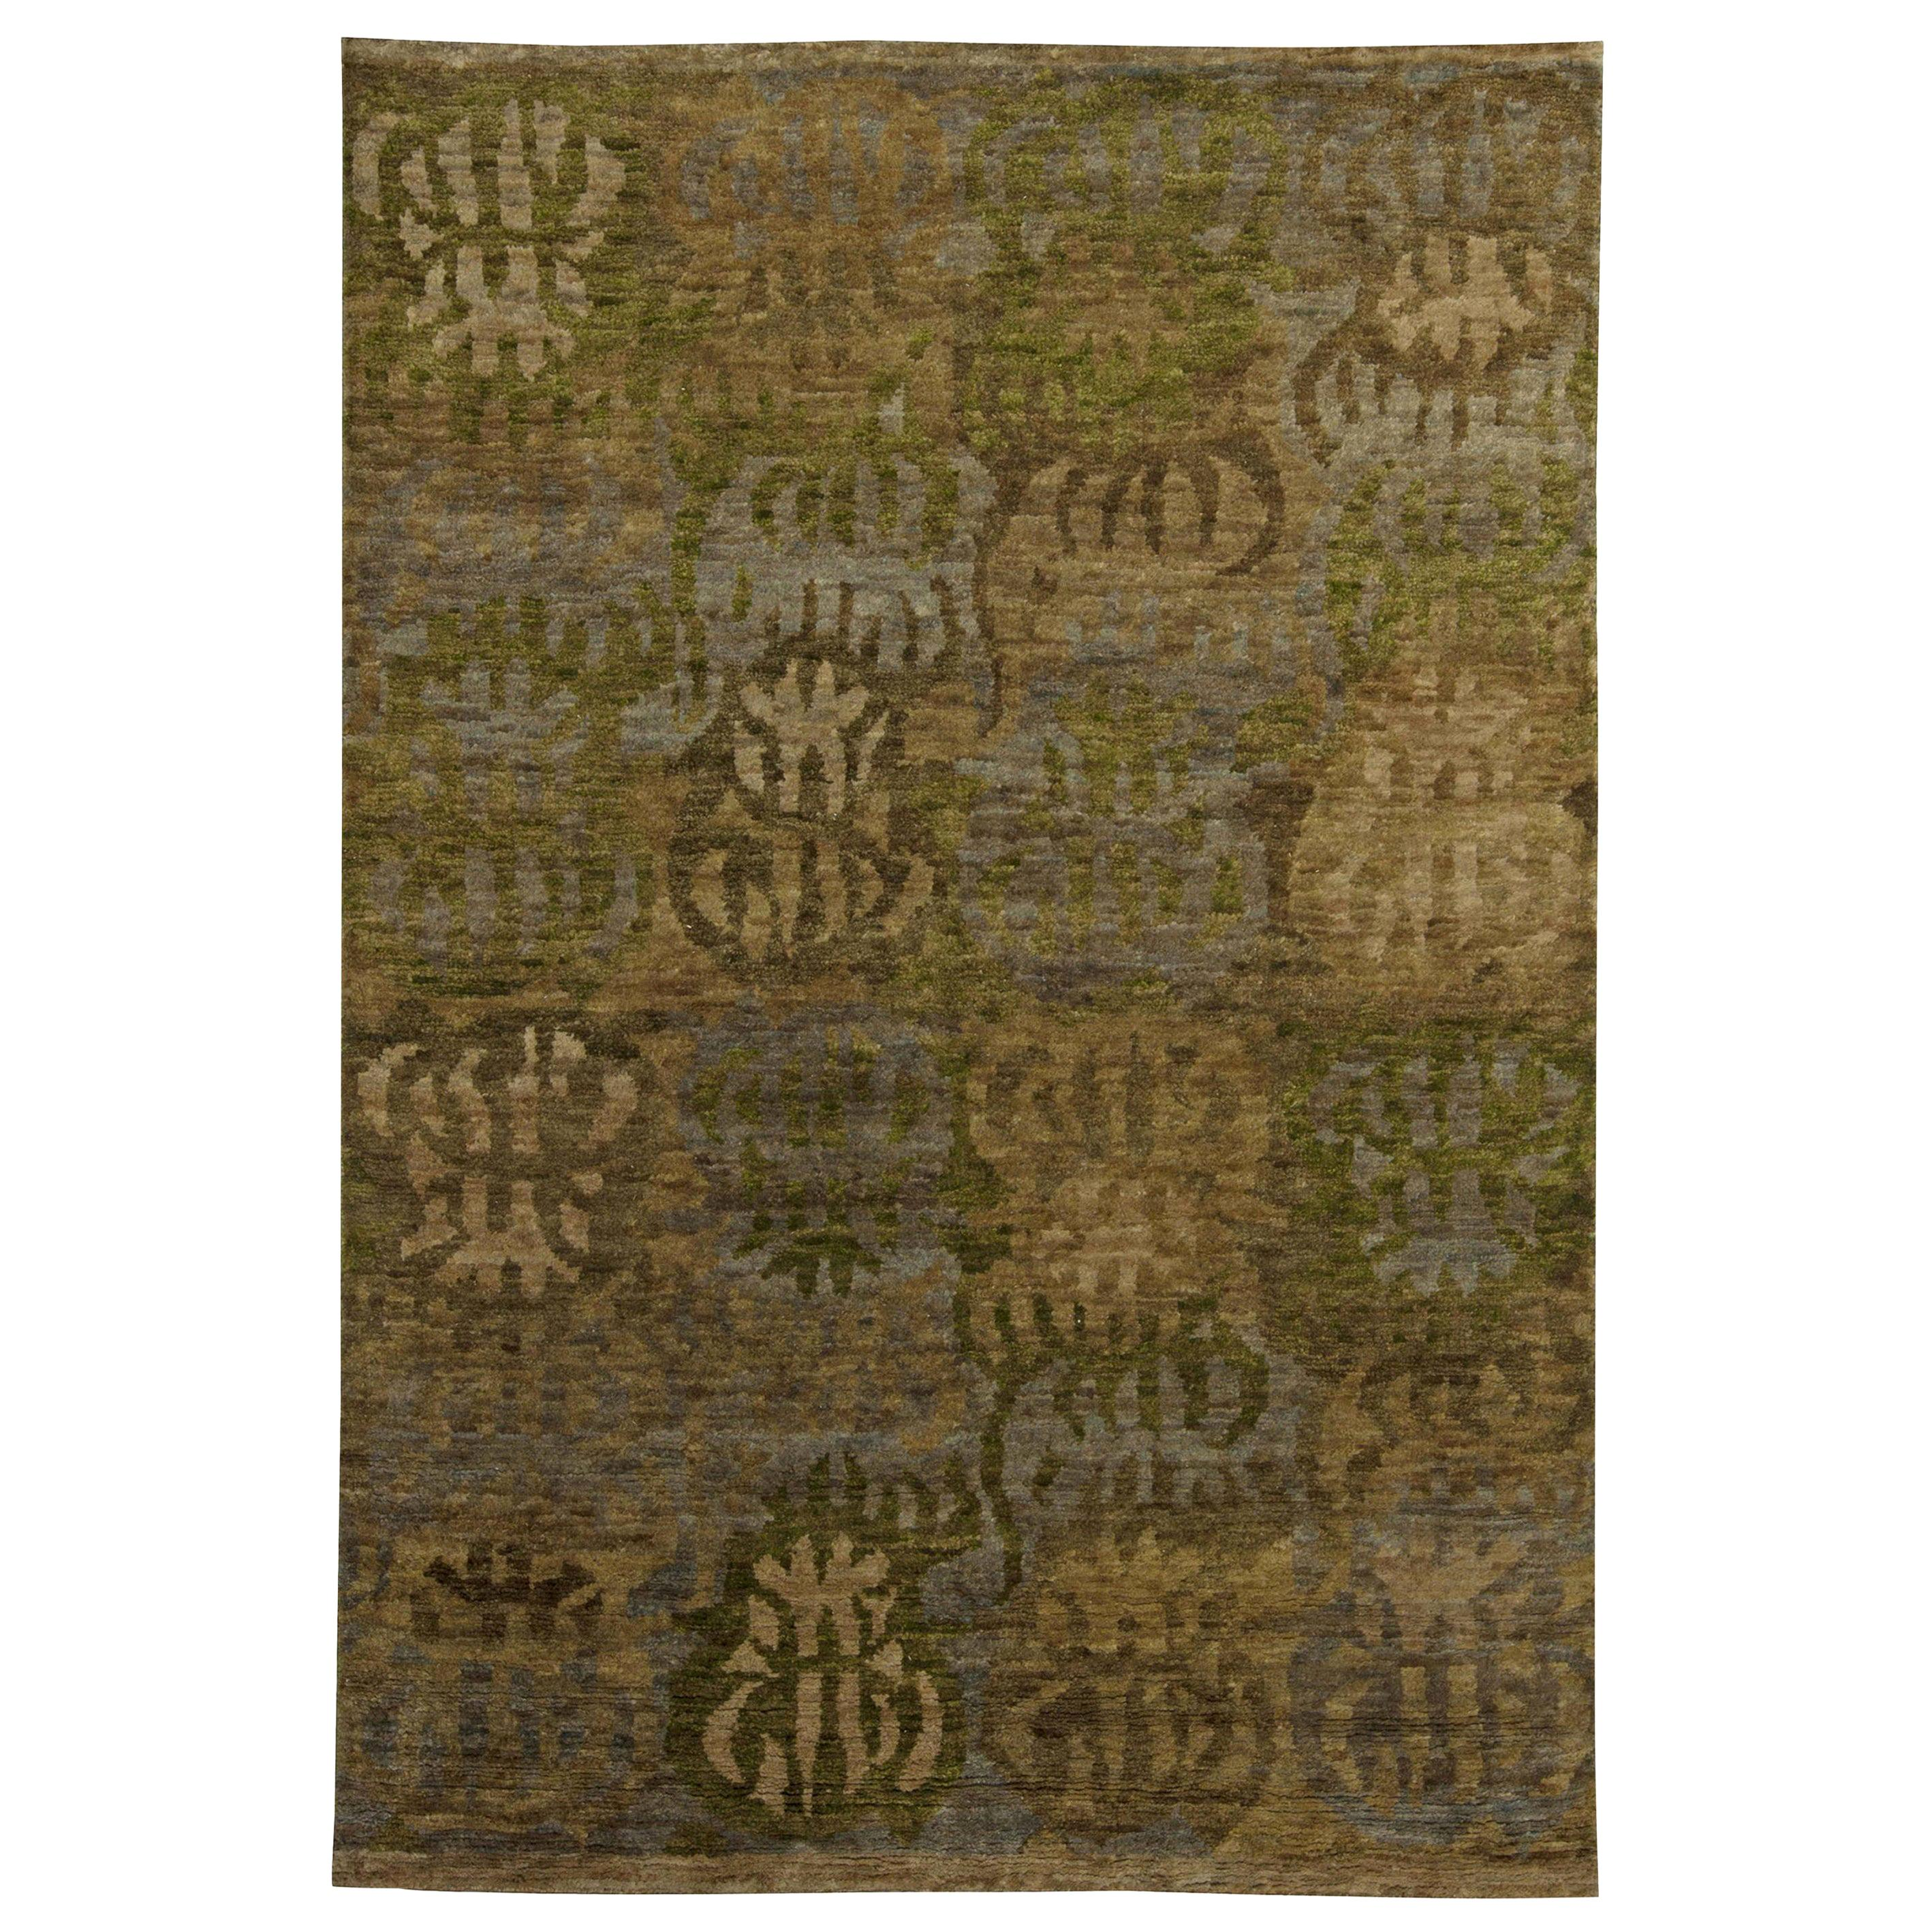 Doris Leslie Blau Collection Brown, Beige, Gray and Green Swedish Inspired Rug